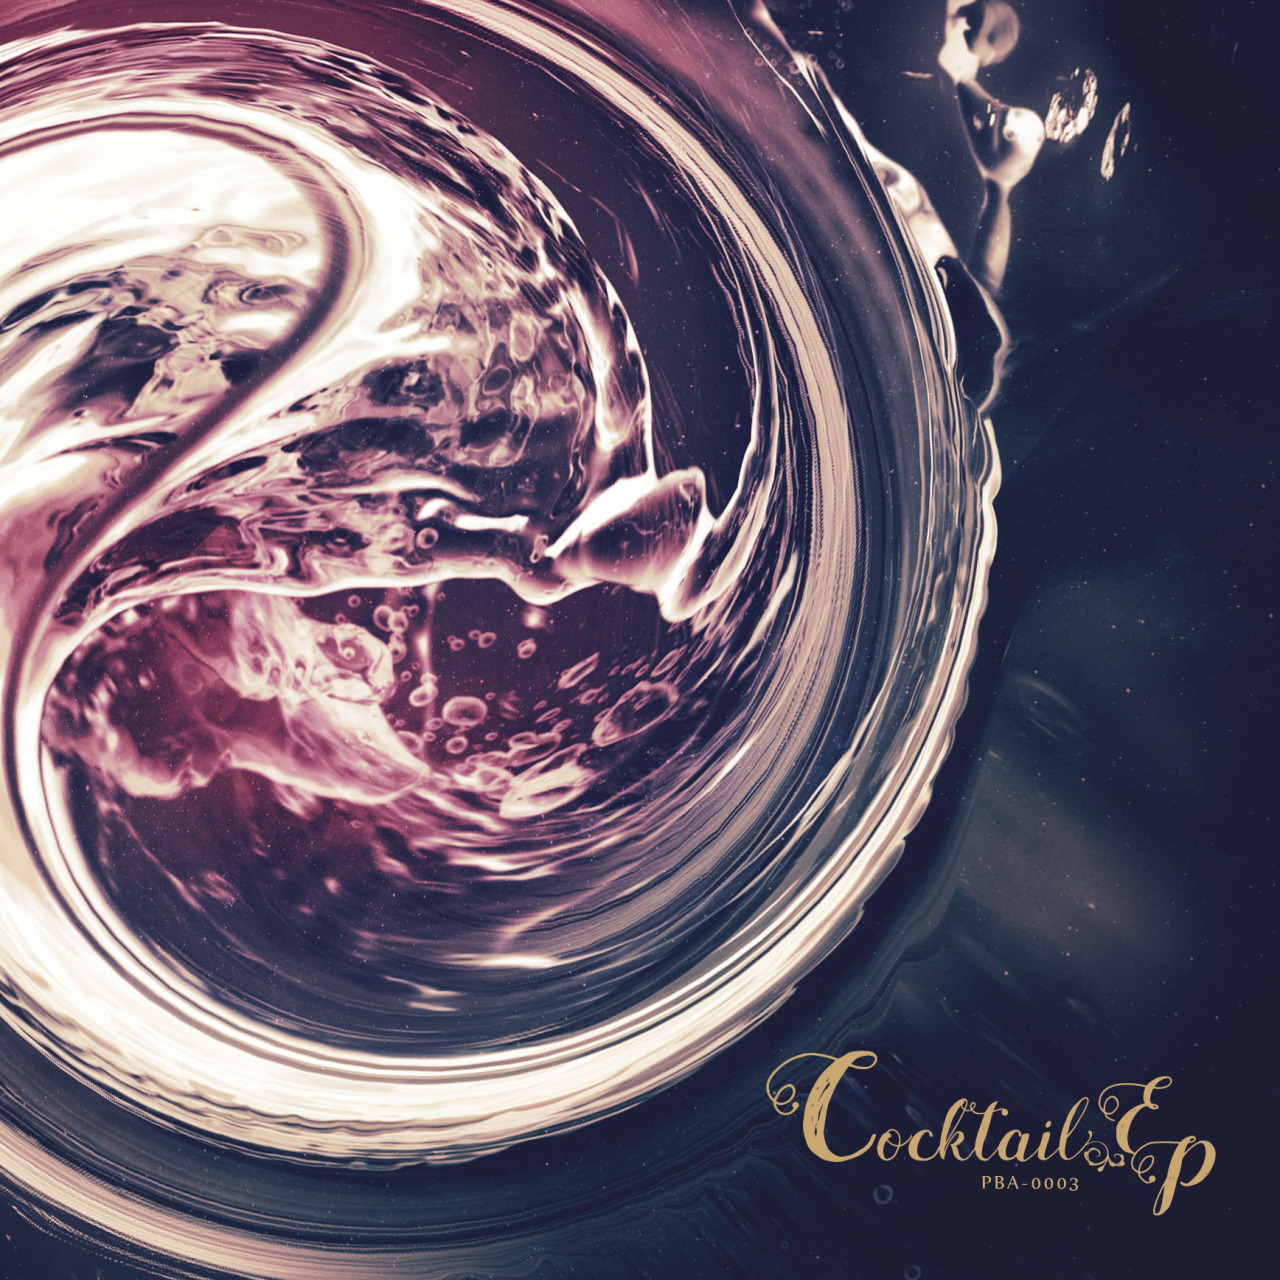 Cocktail EP